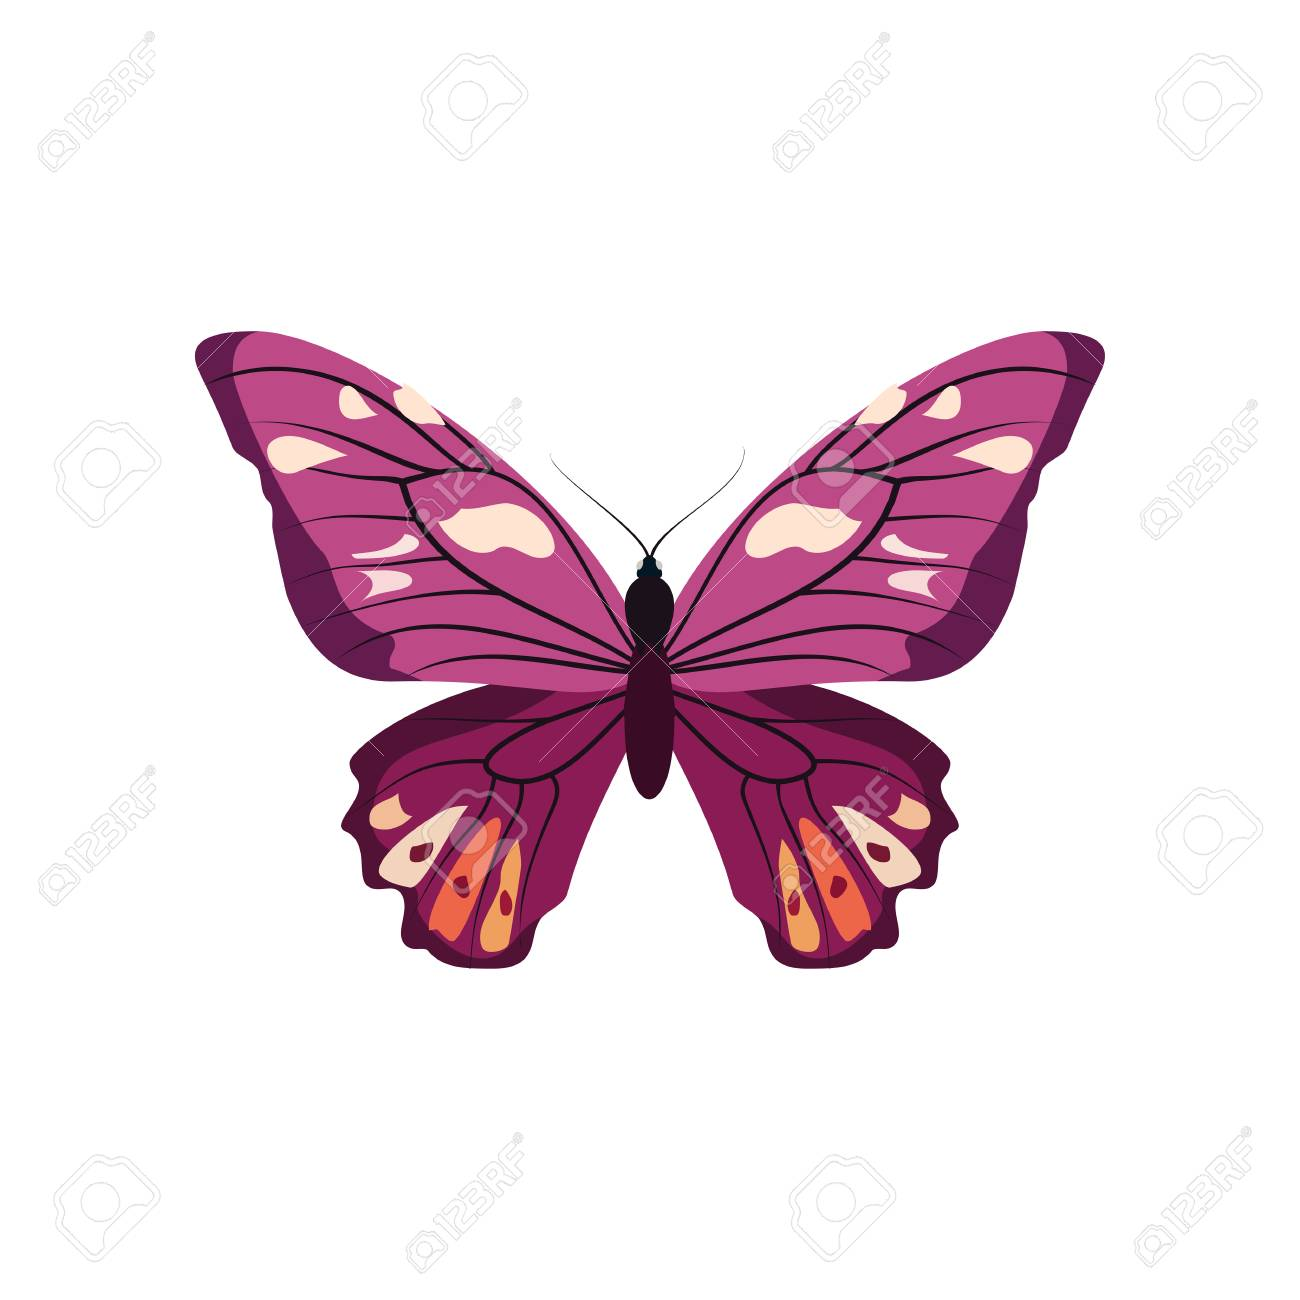 Big Collection Of Colorful Butterflies. Butterflies Isolated ...